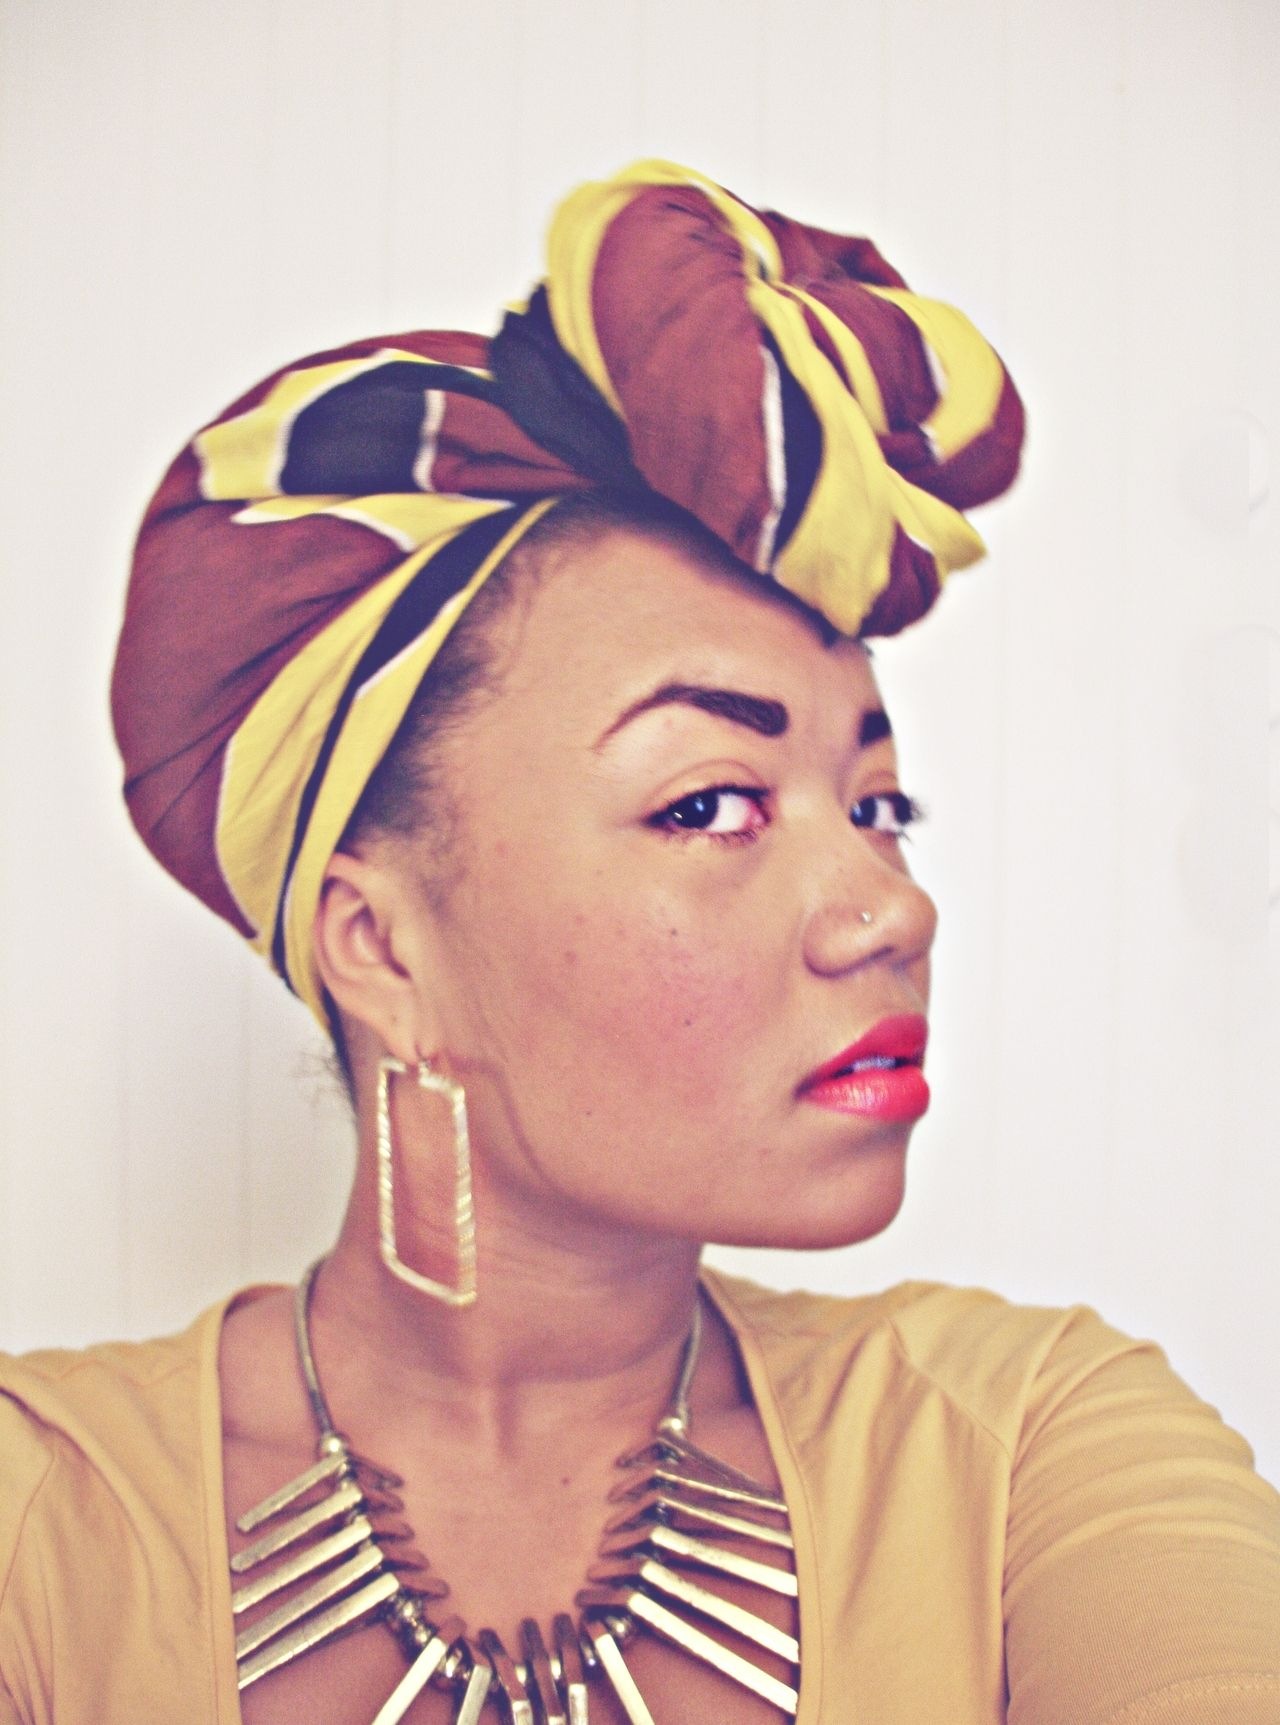 Nose piercing for big nose  Accessories head wrap earrings nose piercing and necklace All